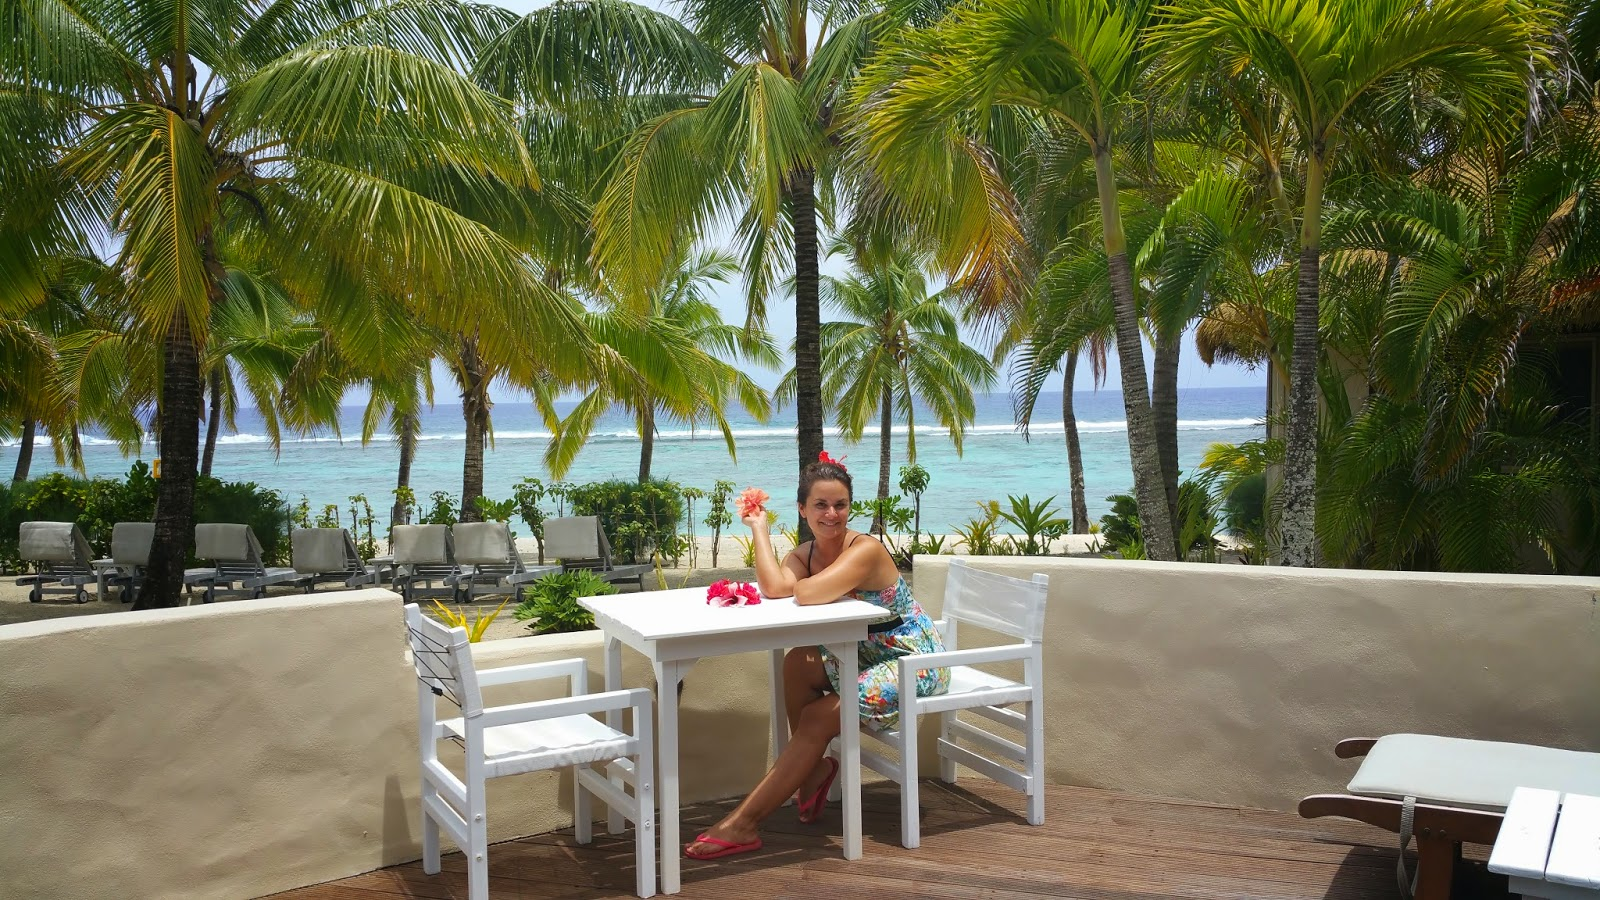 Life is sweet in the Cook Islands :-) - foto di Elisa Chisana Hoshi